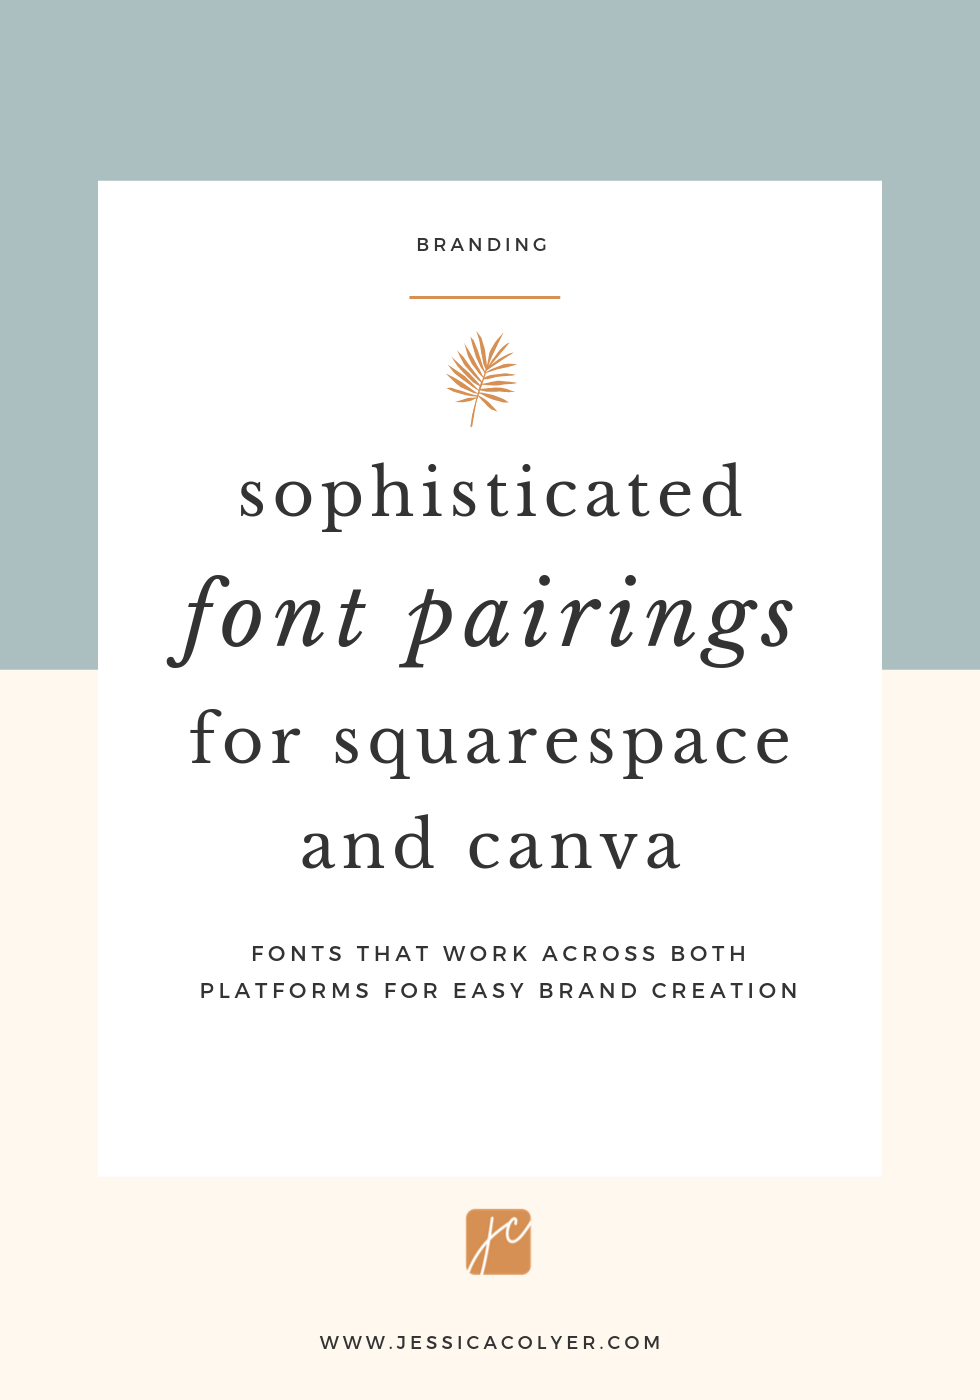 Sophisticated Font Pairings For Squarespace And Canva Here Are Three Favorite Font Combos Available On Both Squarespac Font Pairing Squarespace Website Fonts